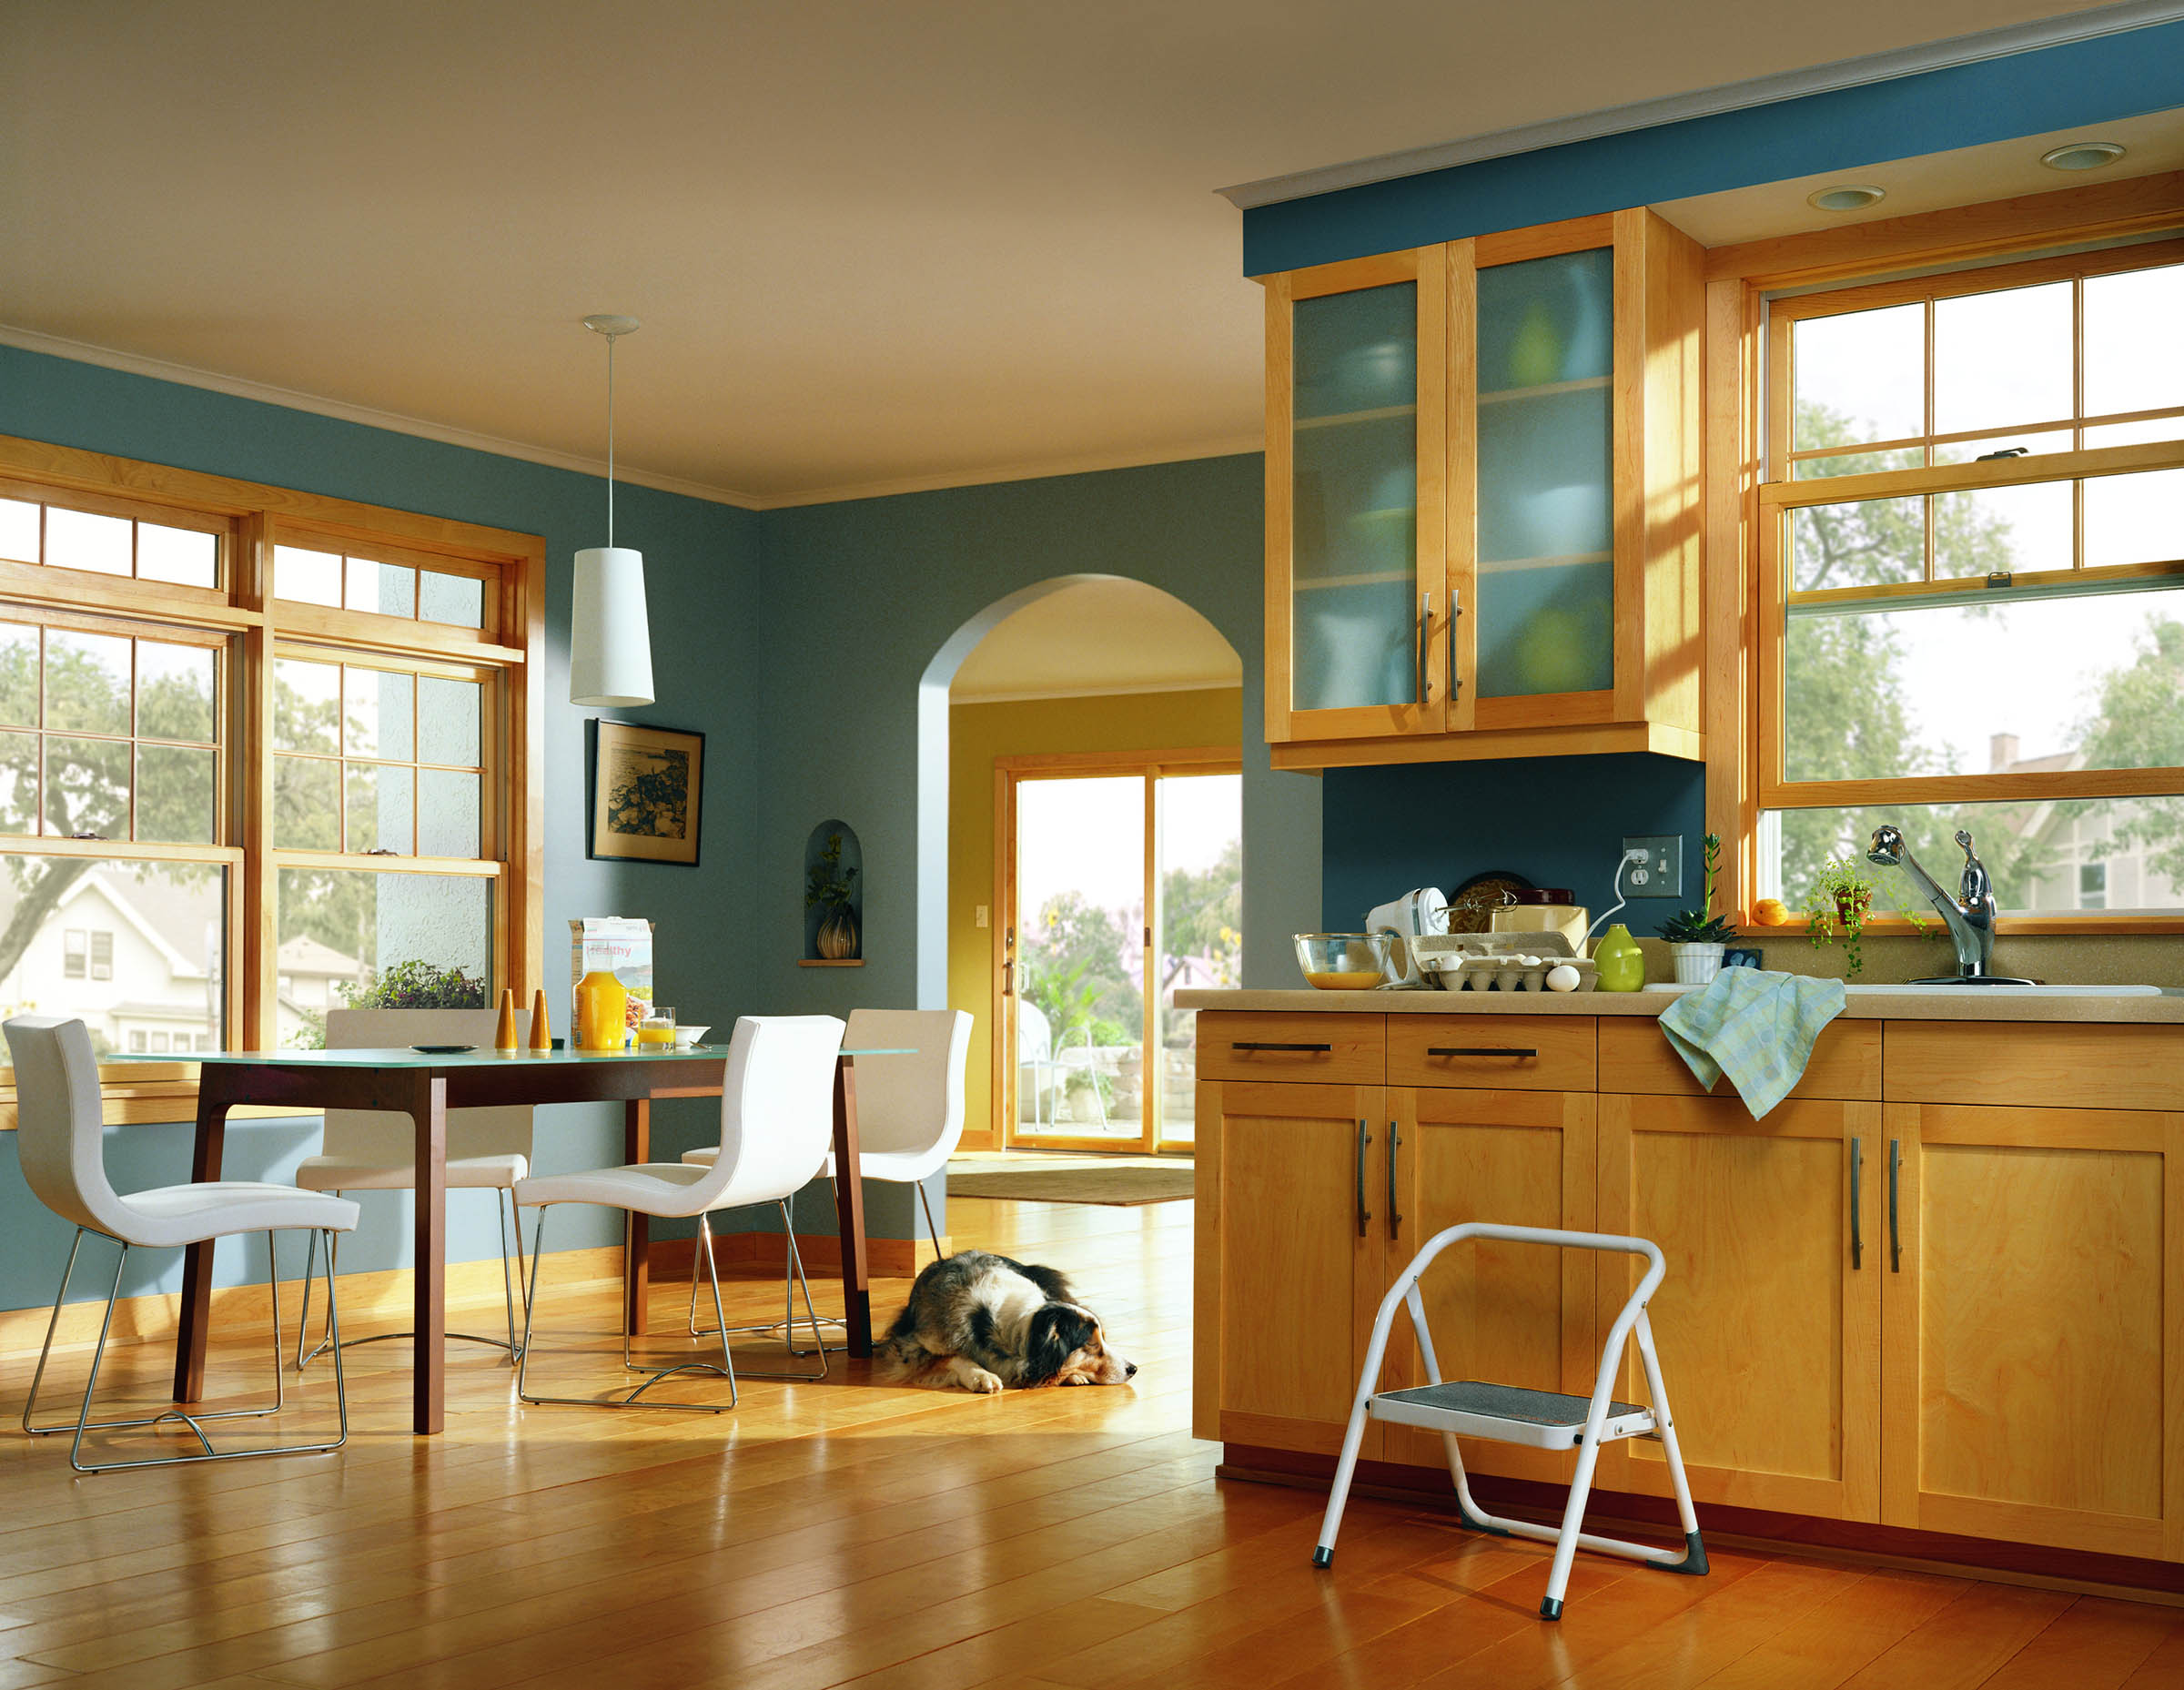 200 Series Tilt-Wash Double-Hung windows